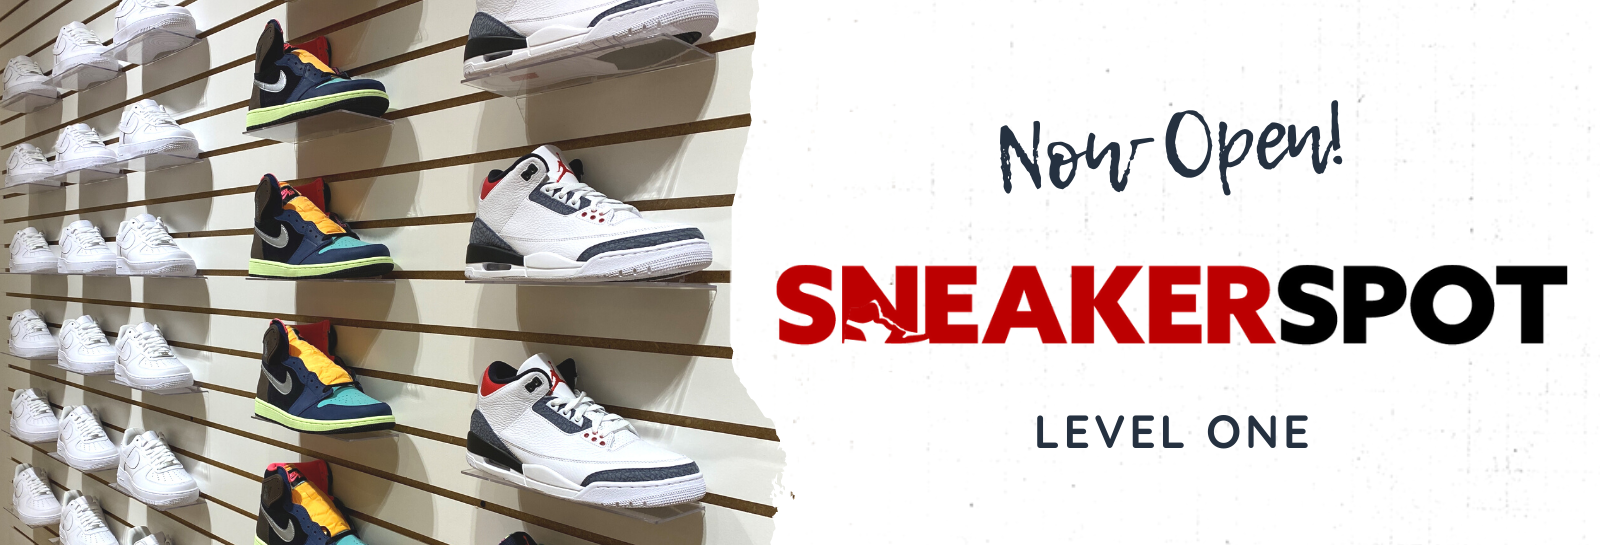 Sneaker Spot Now Open Slider 2020